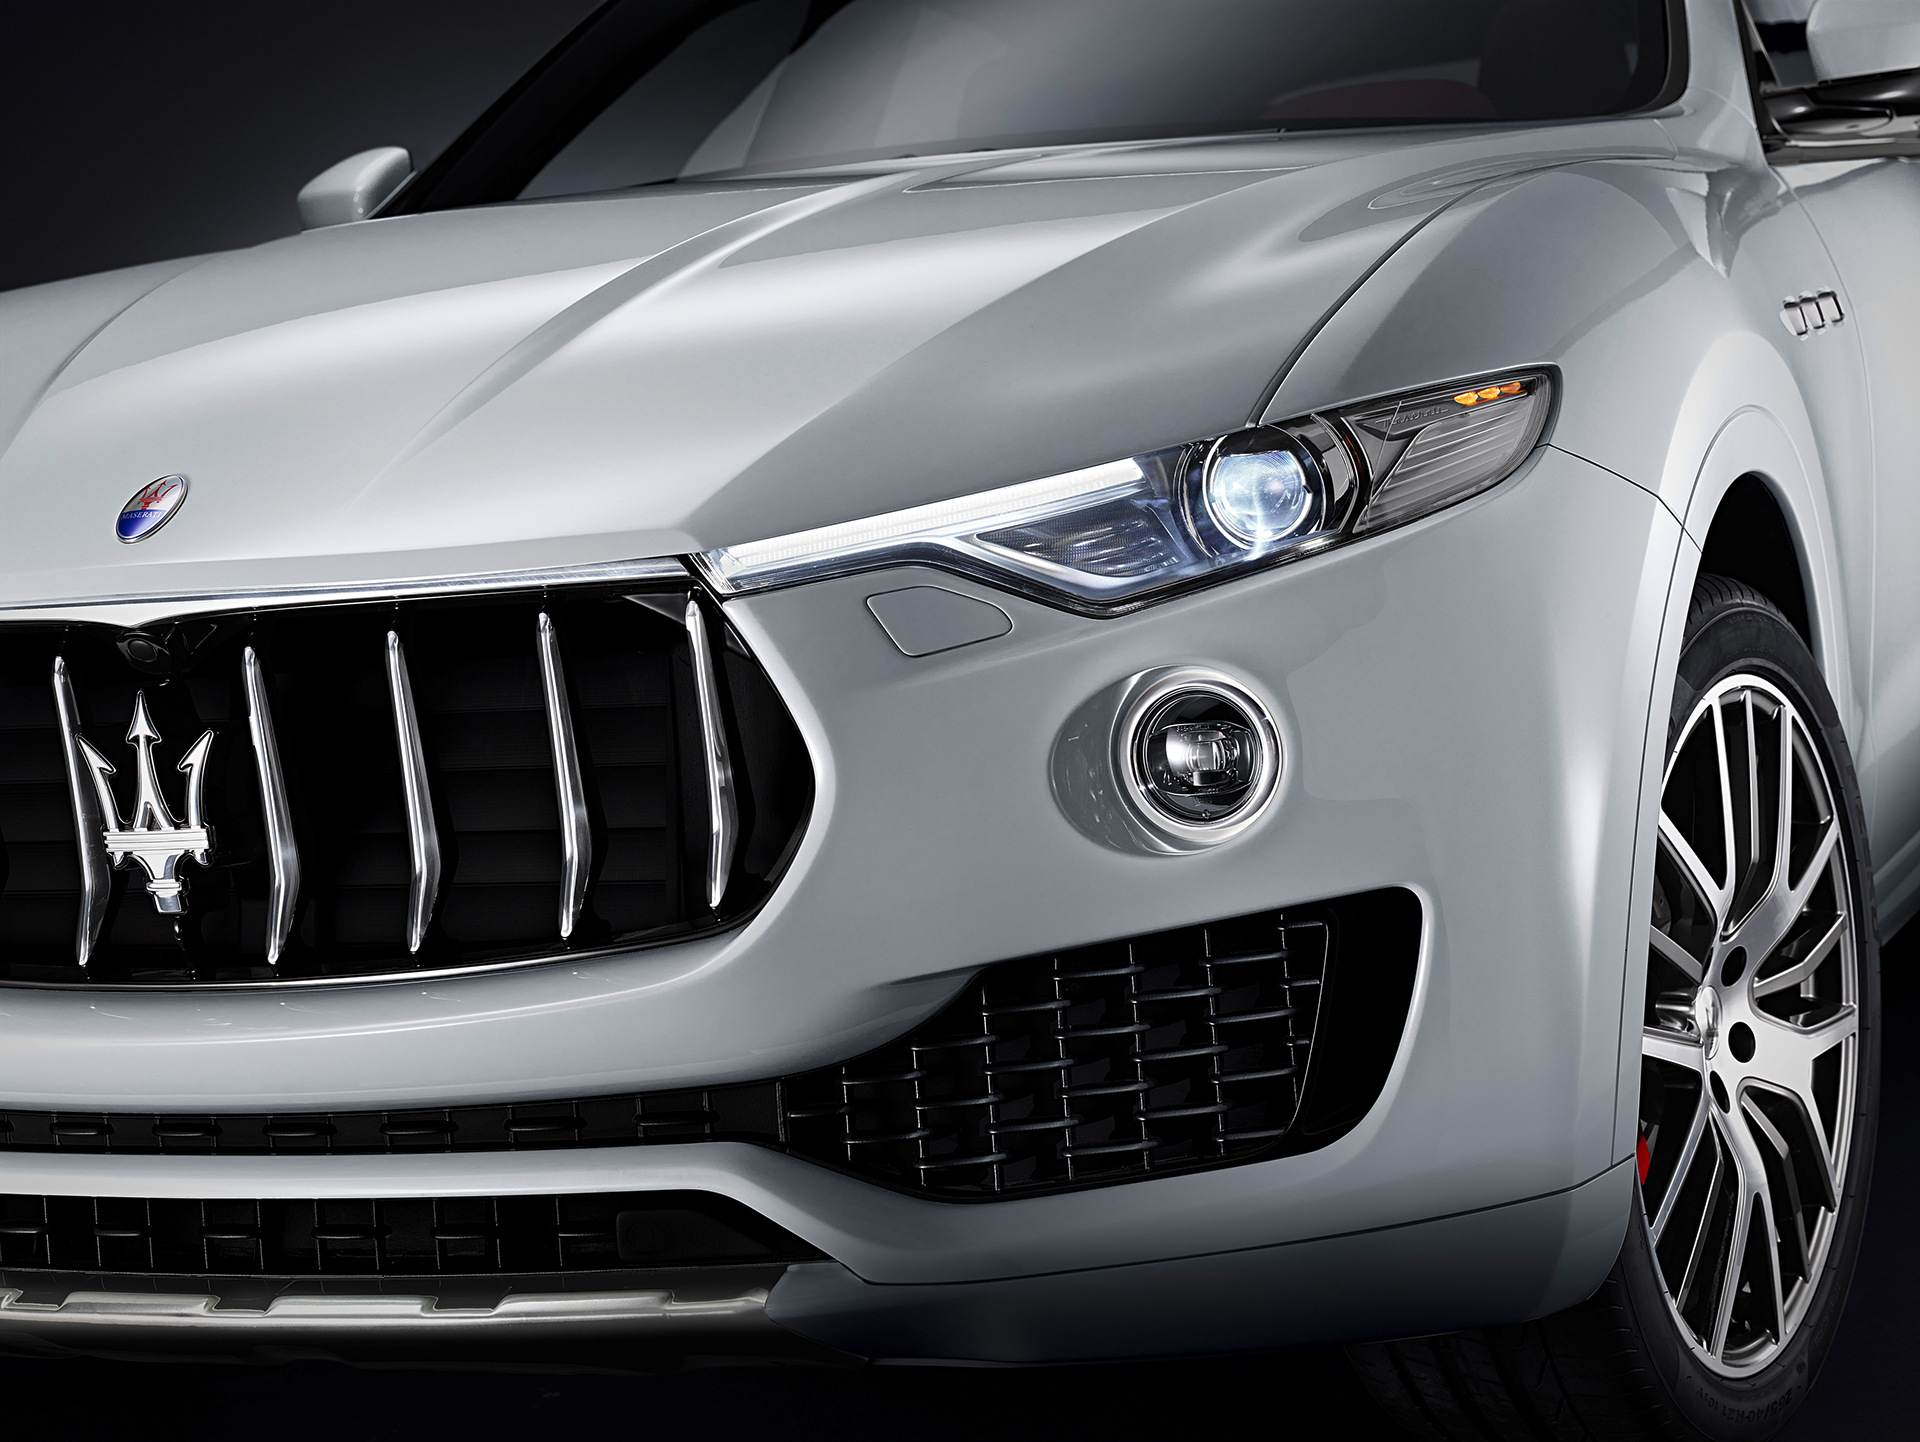 Maserati Levante - 2016 - front light